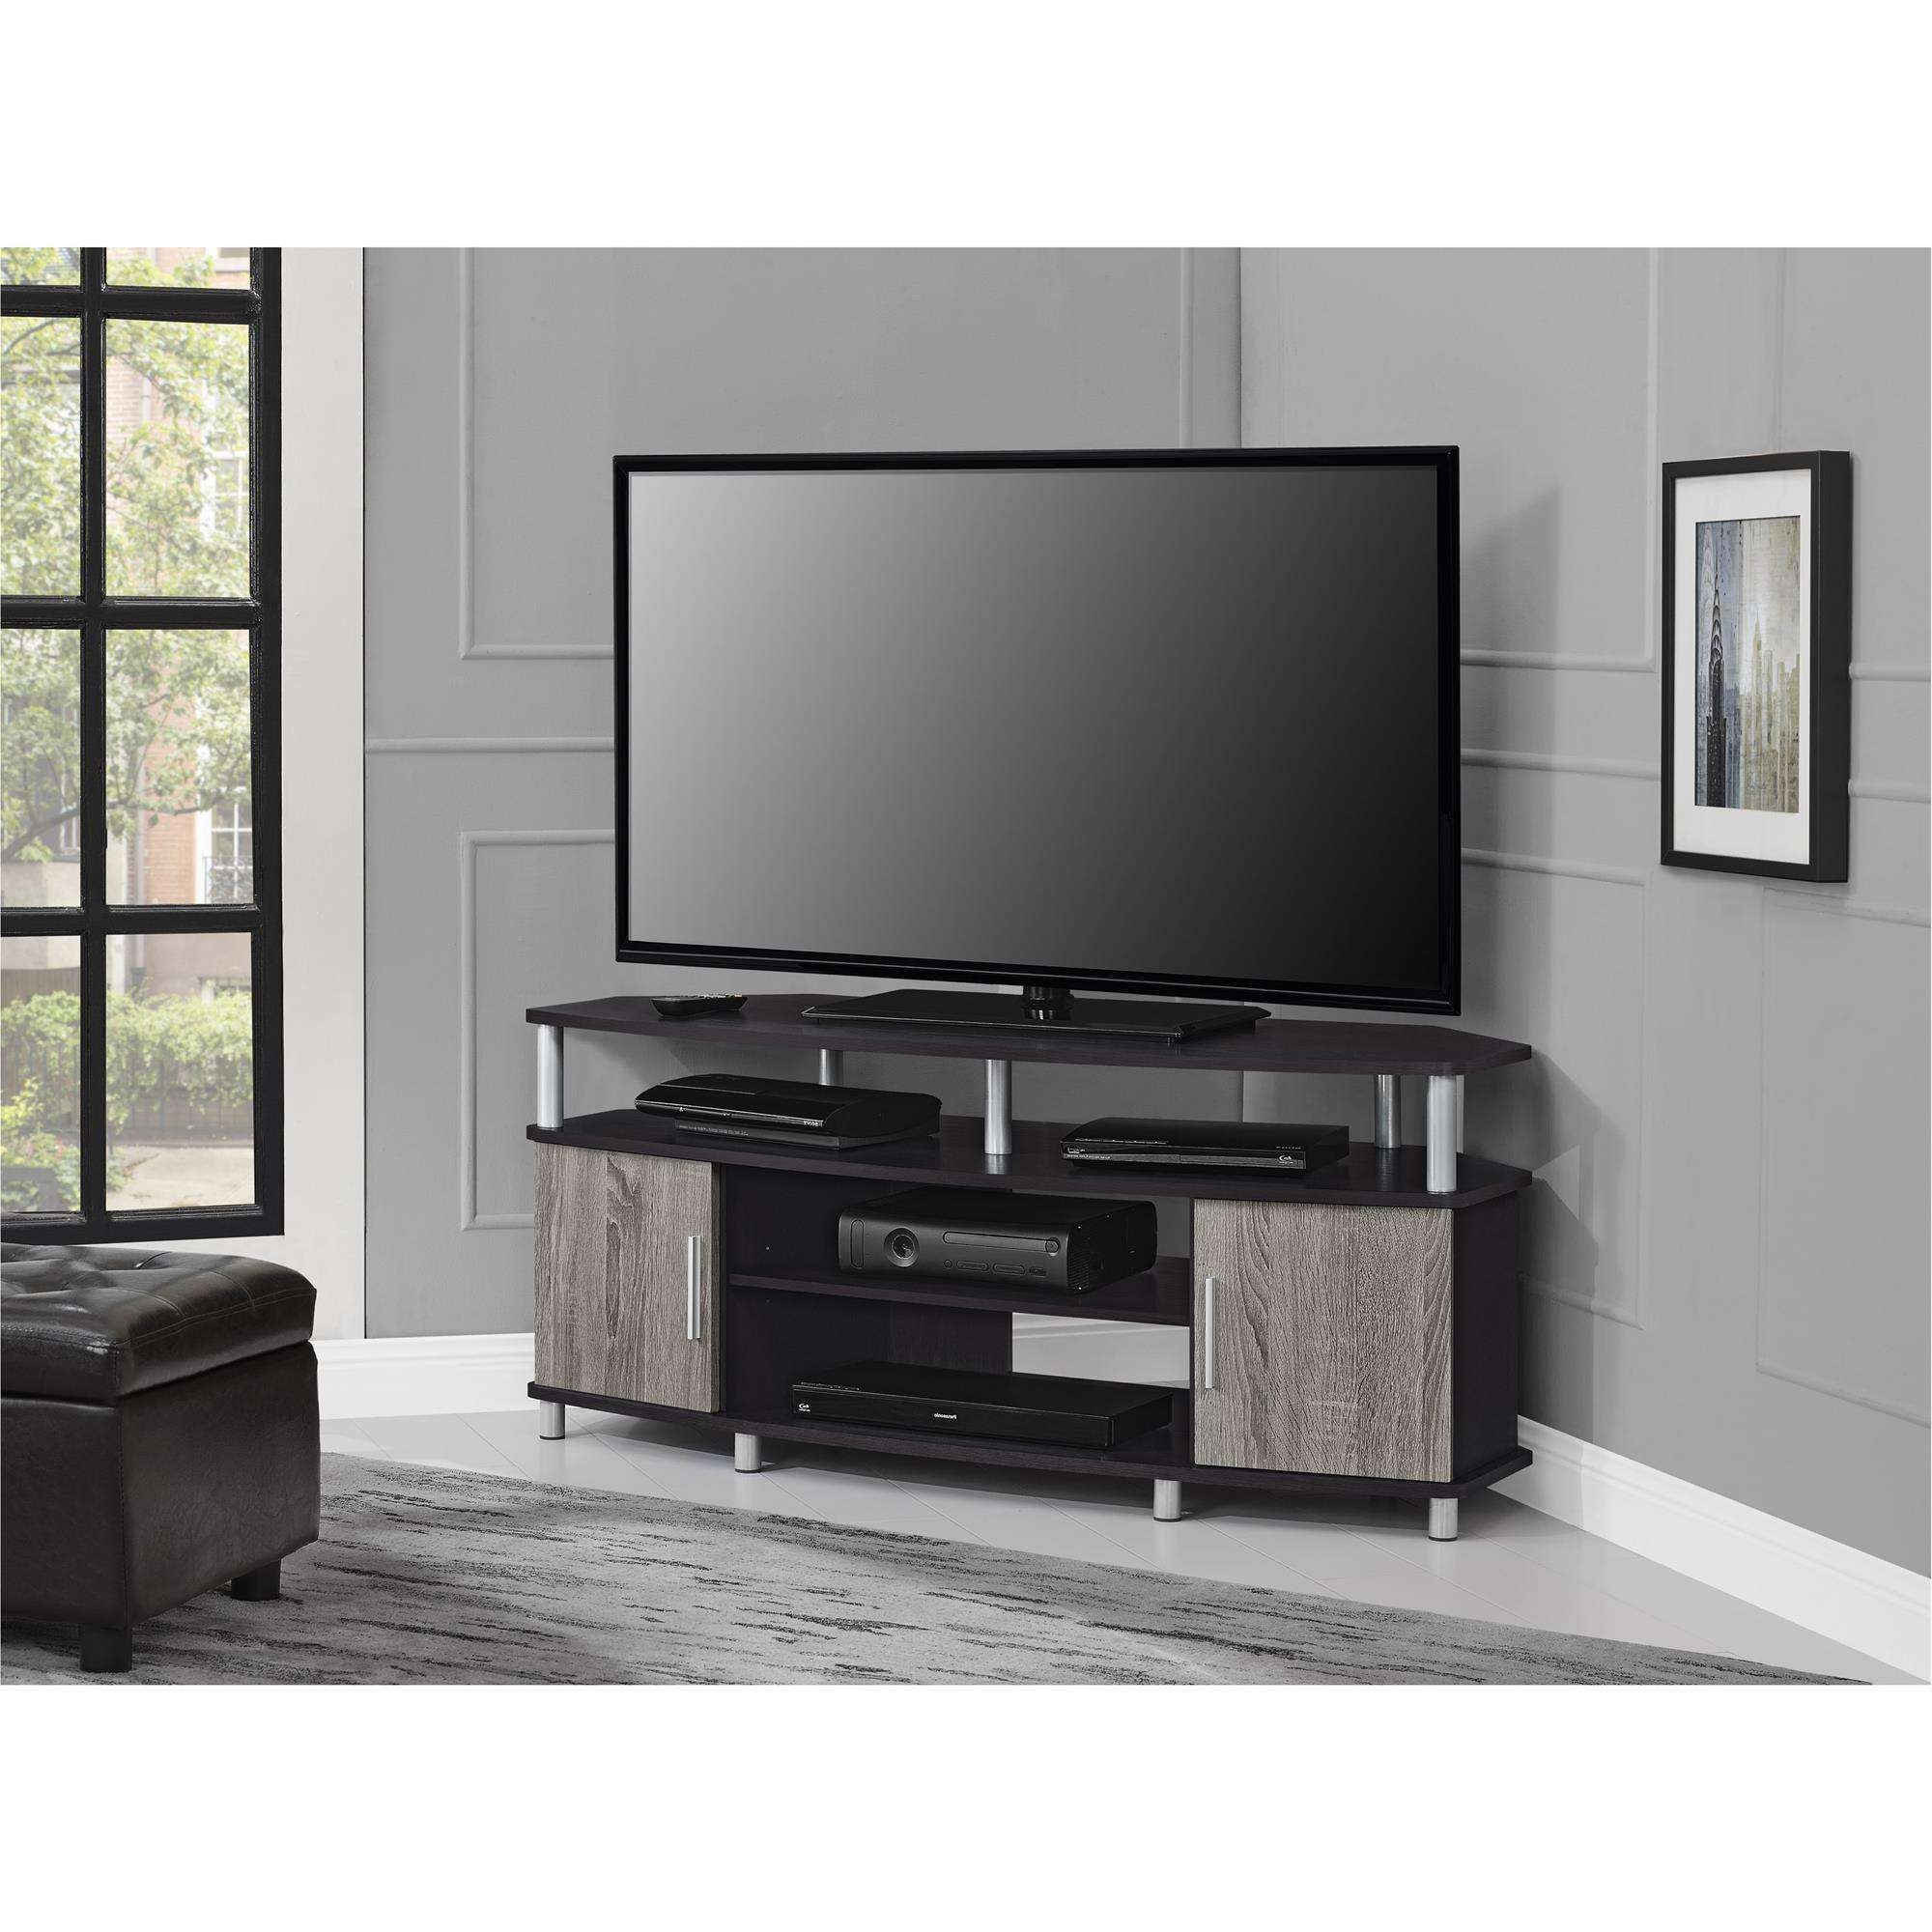 Tv Stands For Inch Furnitures Stylist Corner Stand Flat Screen Inside 55 Inch Corner Tv Stands (View 14 of 20)